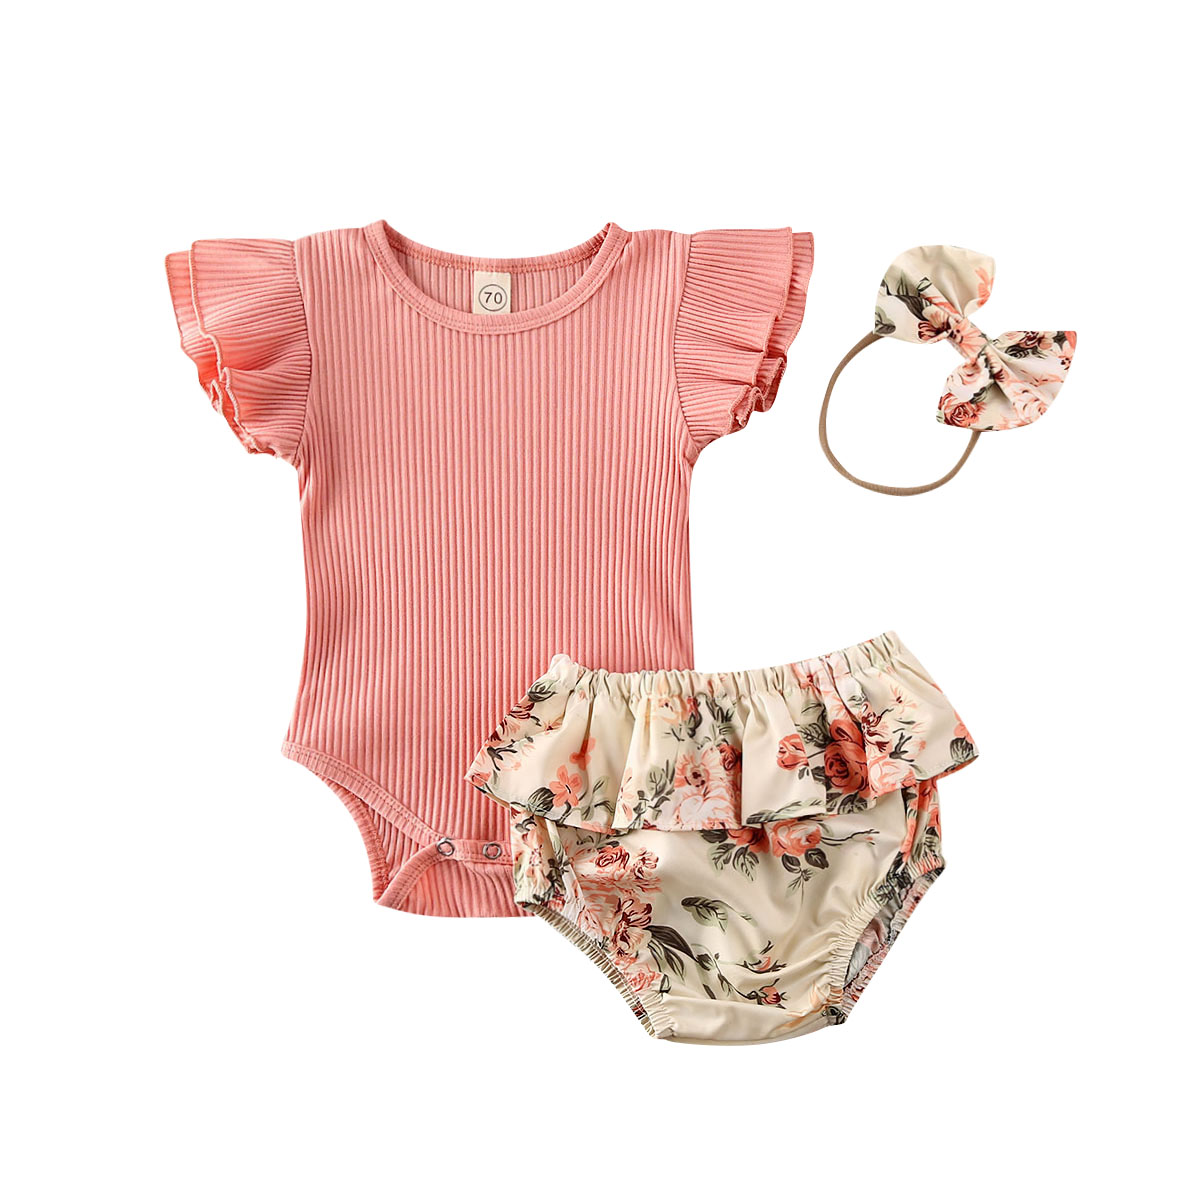 Baby Summer Clothes Infant Newborn Baby Girl Ruffled Ribbed Bodysuit Floral Shorts Headband 3Pcs Set